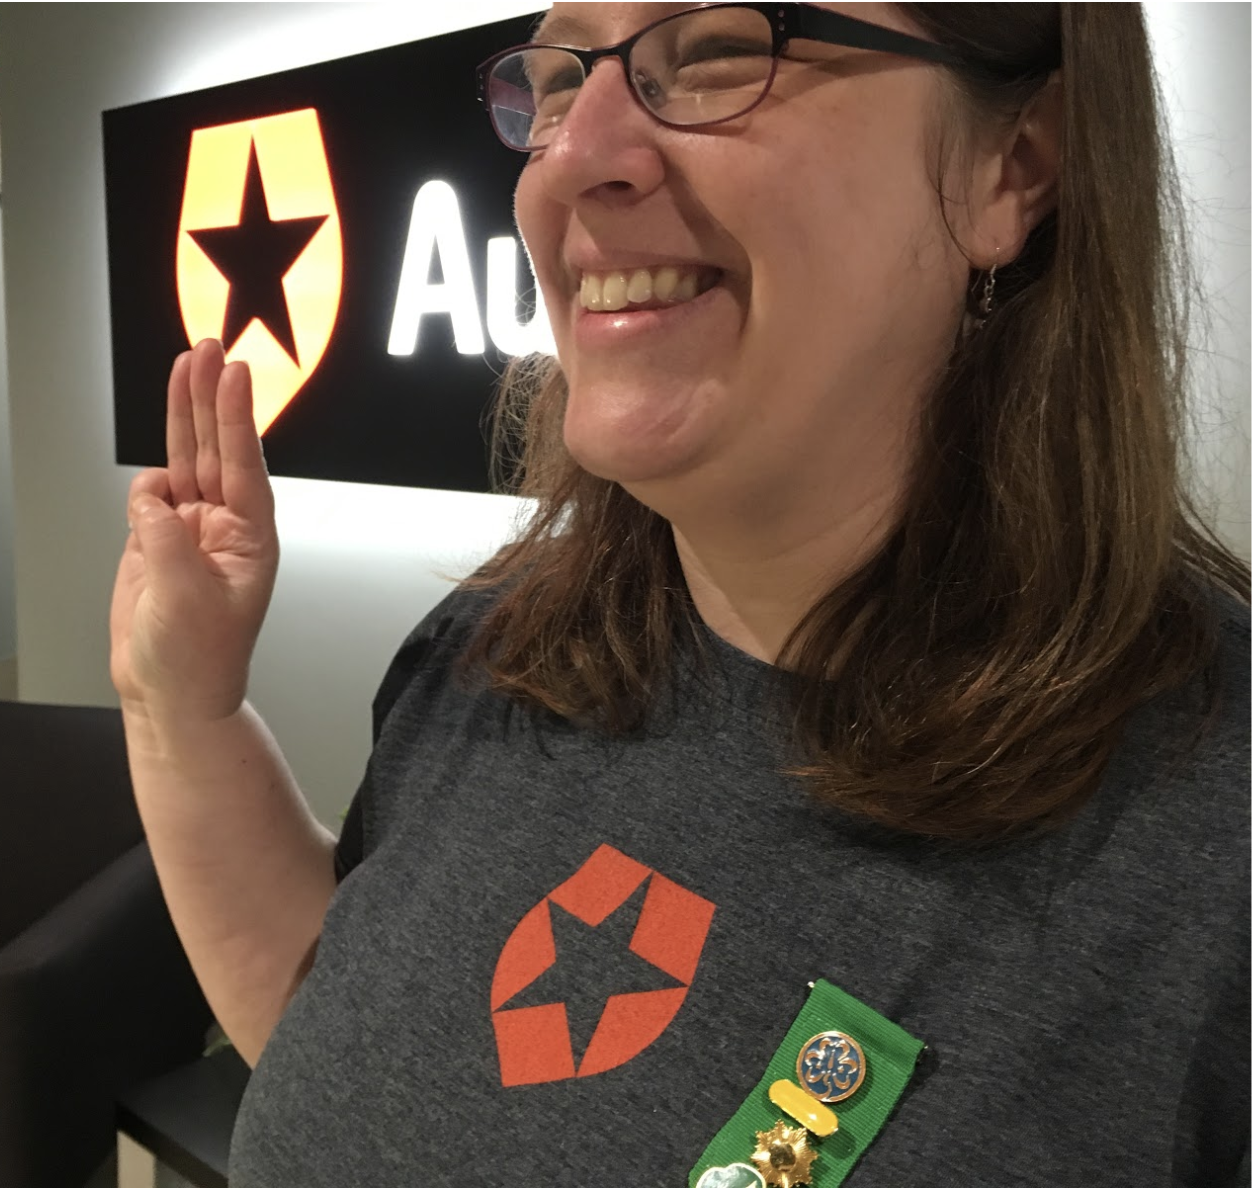 Auth0 Support Operations Manager Abigail Sanchez showing Scout Sign Salute with badges of Scout accomplishments